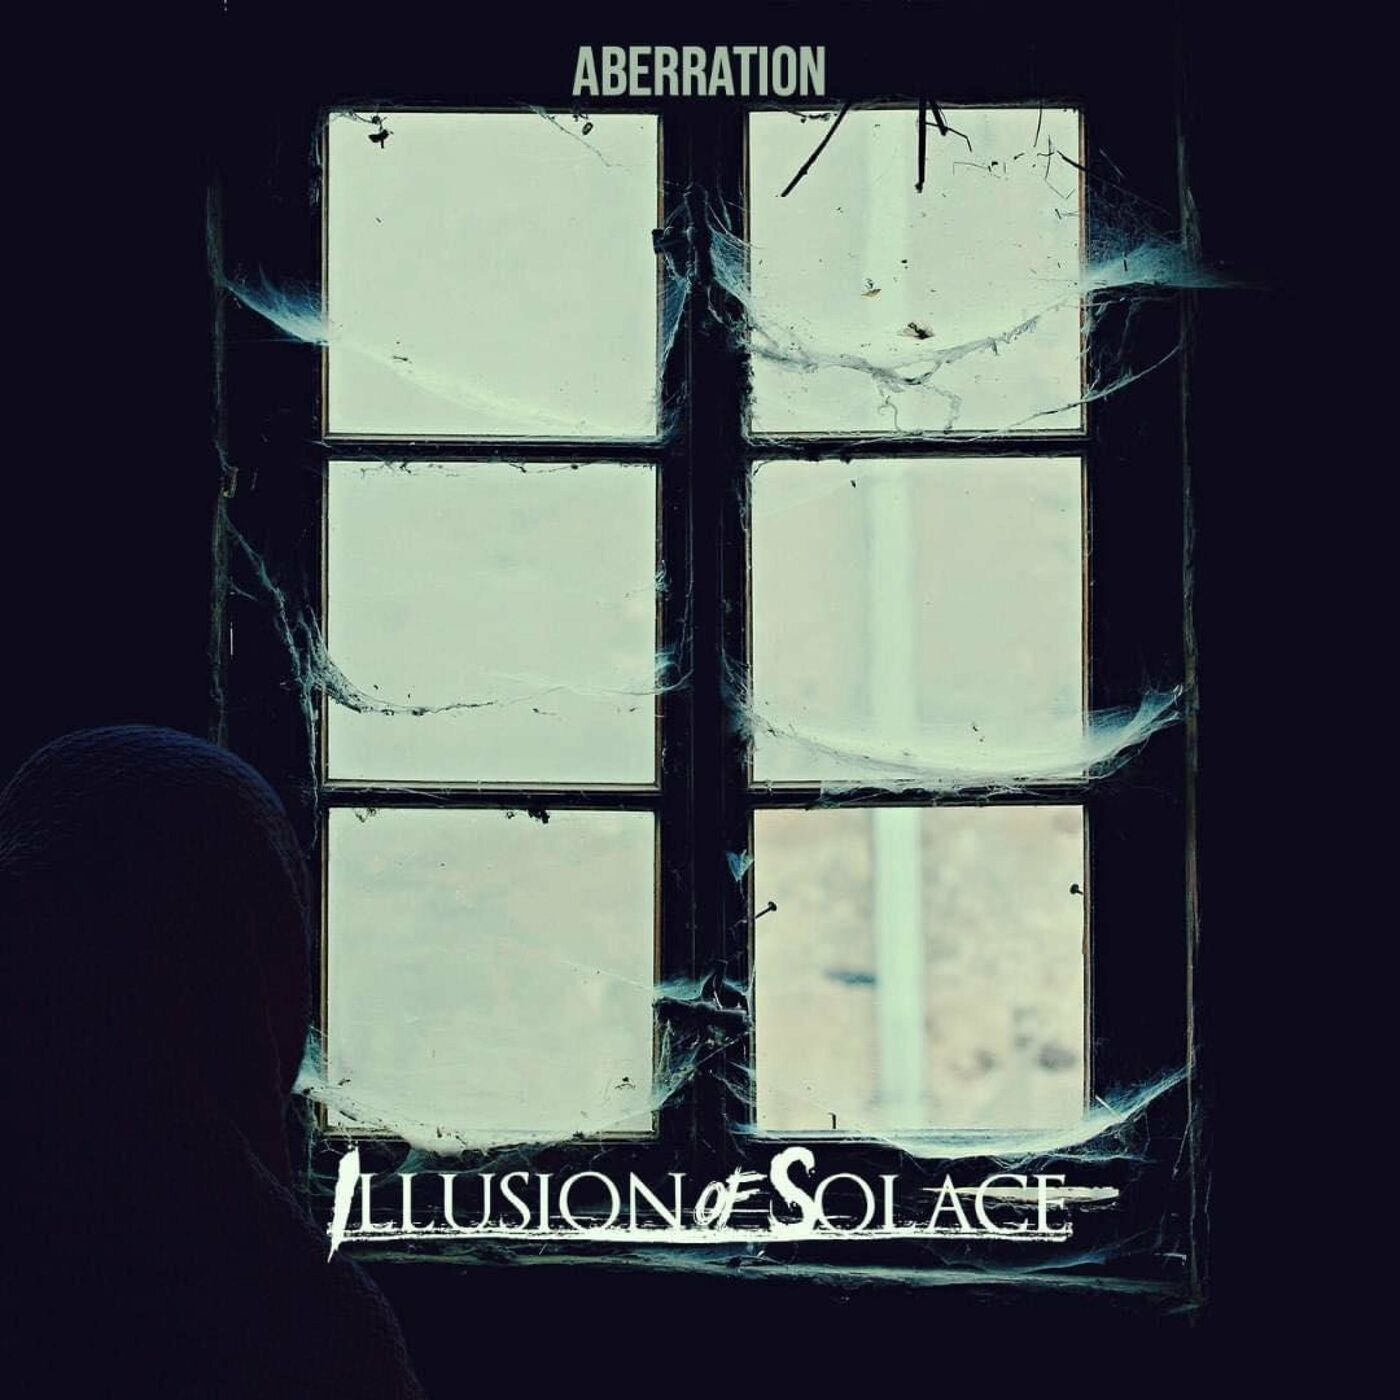 Illusion of Solace - Aberration [single] (2020)